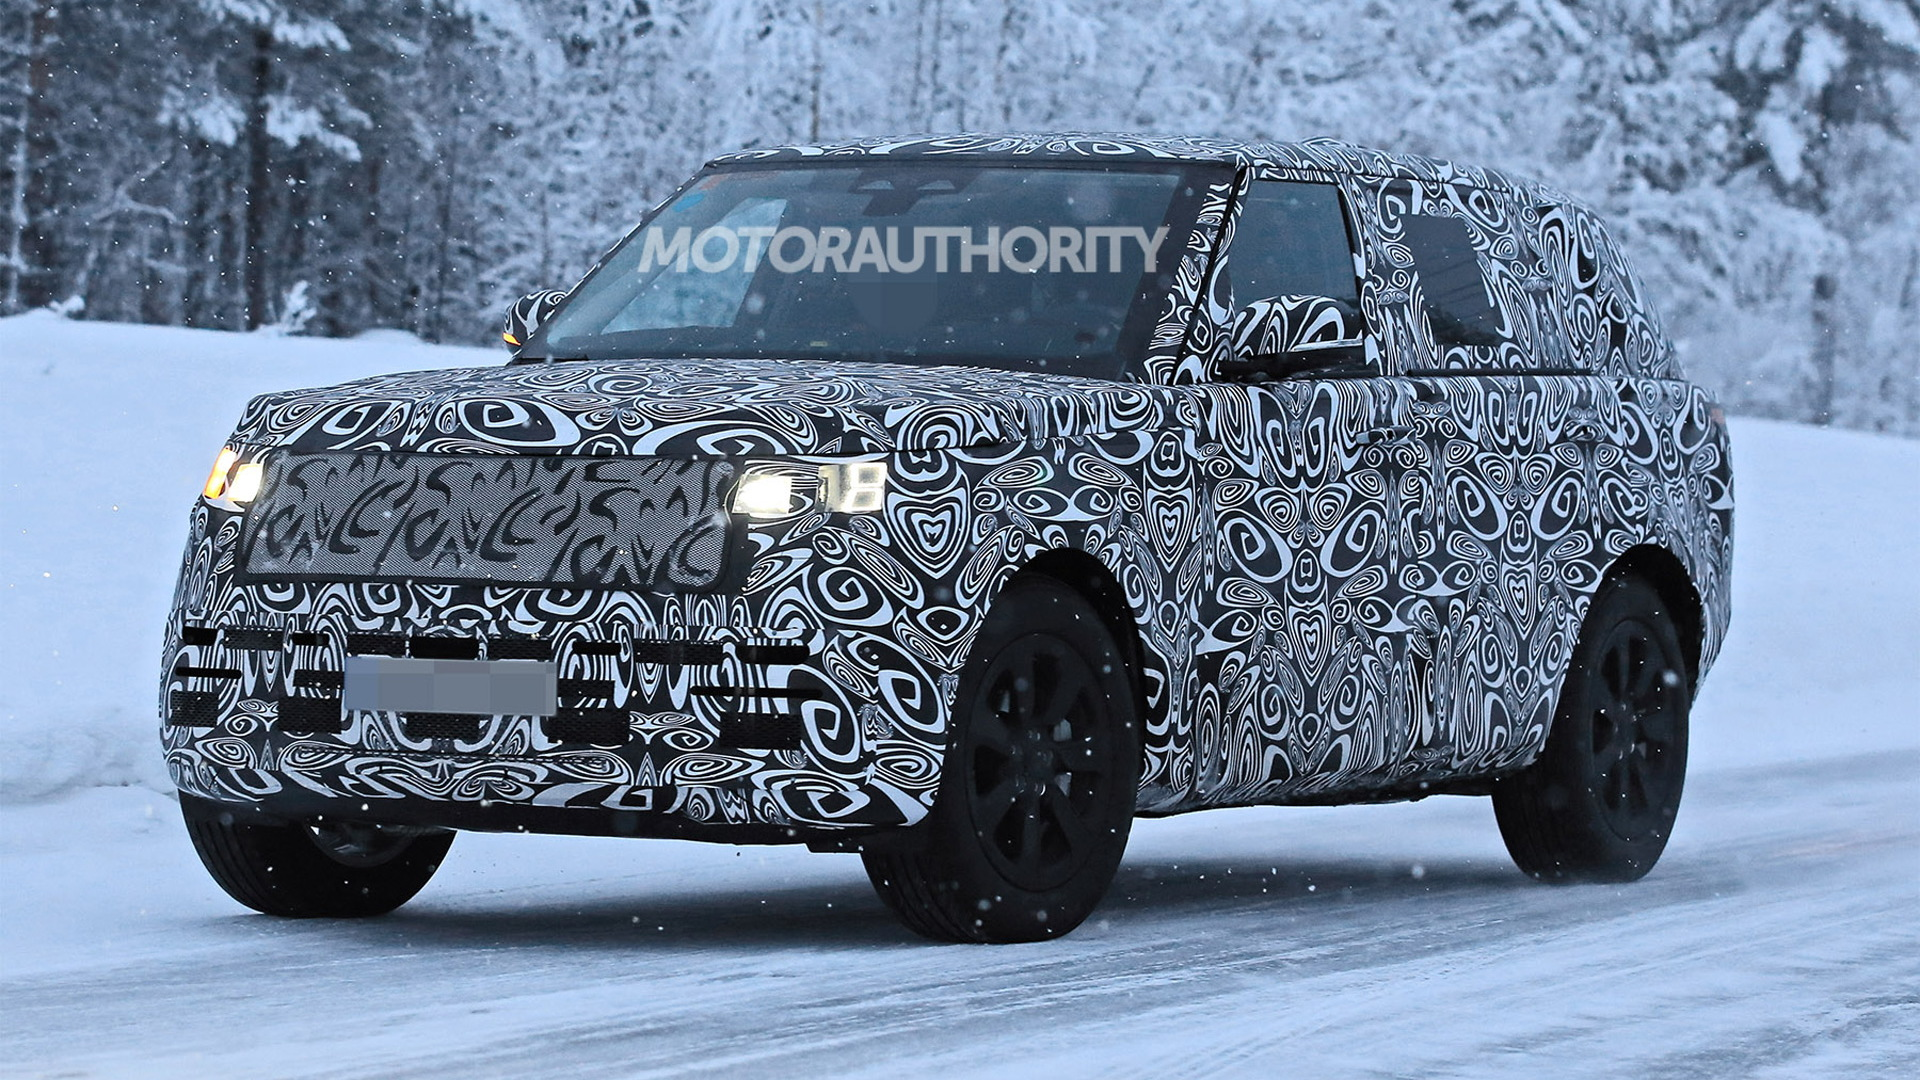 2022 Land Rover Range Rover Long Wheelbase spy shots - Photo credit: S. Baldauf/SB-Medien